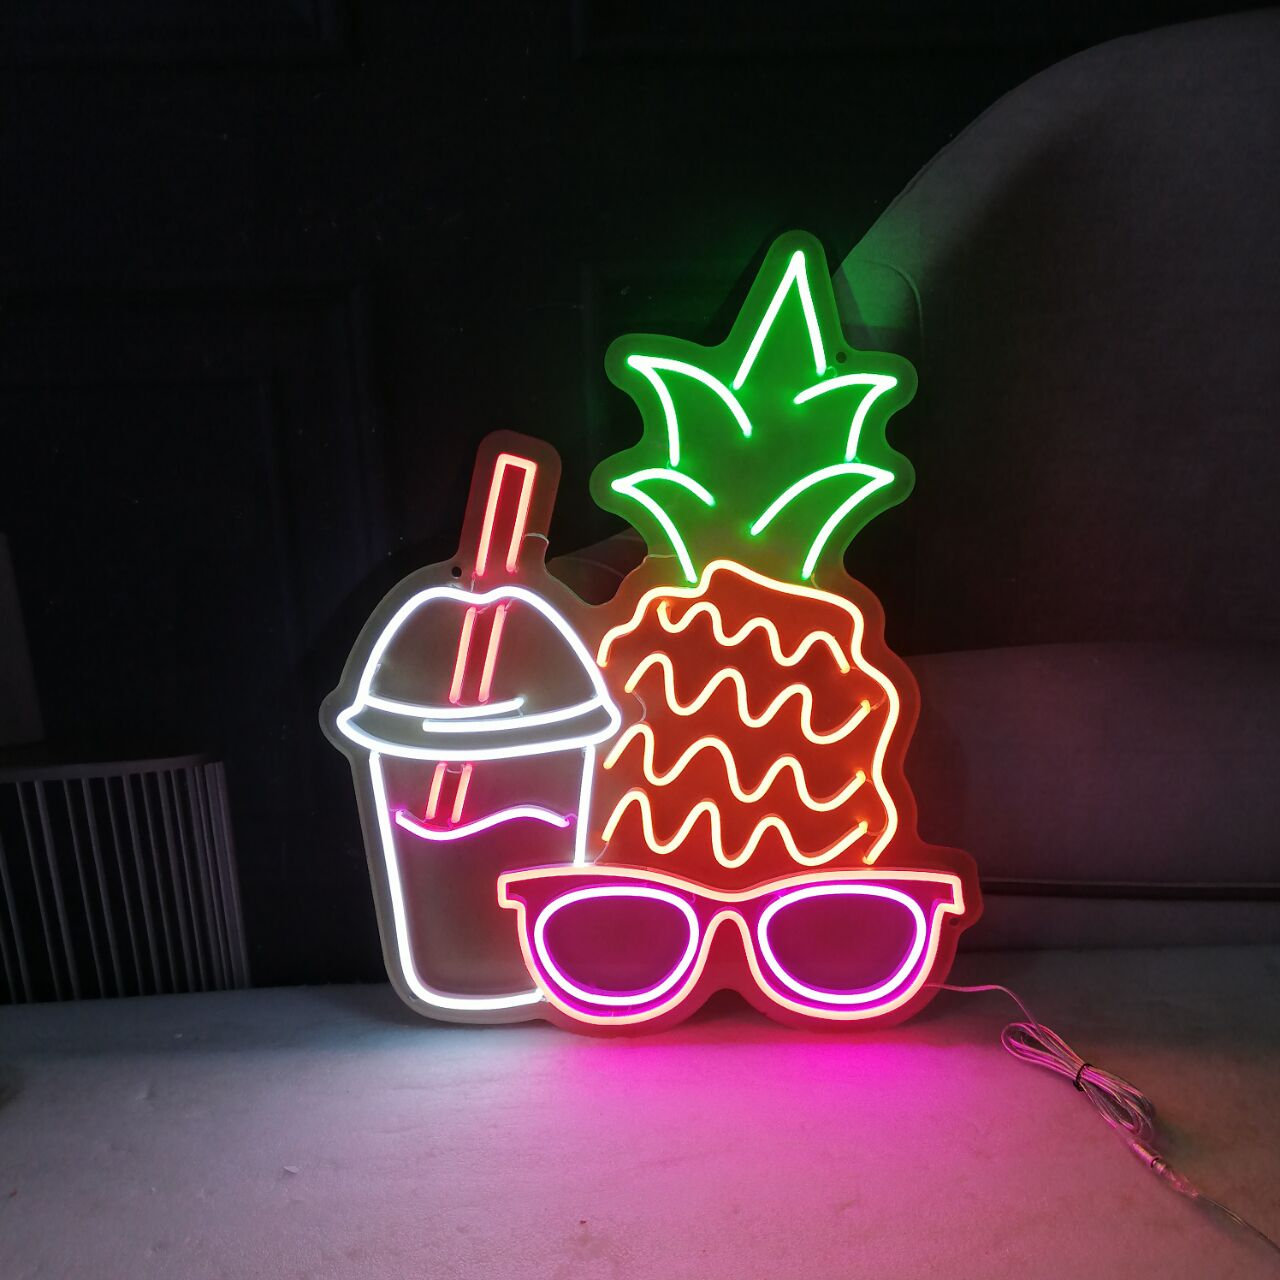 Back To The 80s Logo Custom LED Letter Neon Sign Vintage Wall Decor for Bar Beach Shop Restaurant Party Decorative Light